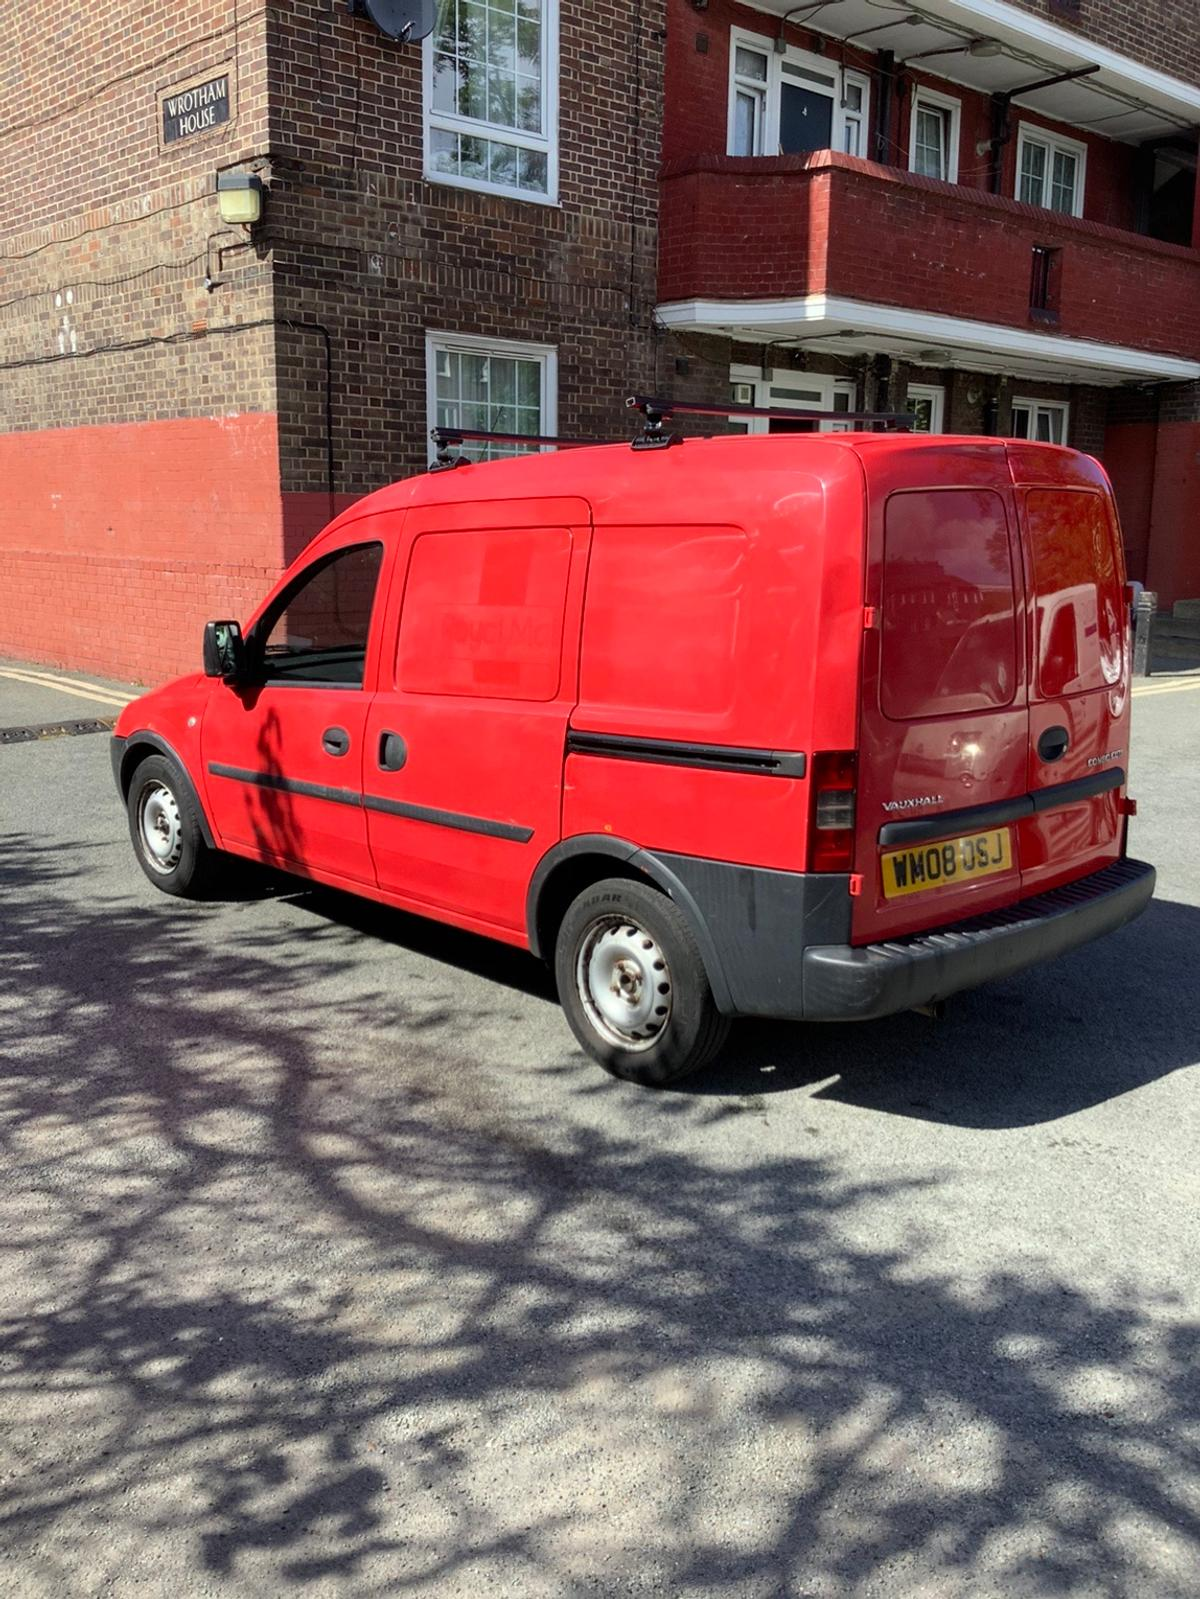 Tidy, clean, small van with low miles for age 80100, central locking and stereo. Ex-royal mail. Age related marks also. New clutch and track rod ends. Great little van for any workman. I purchased for myself but lack of work means it's no longer needed. No silly offers . ONO.